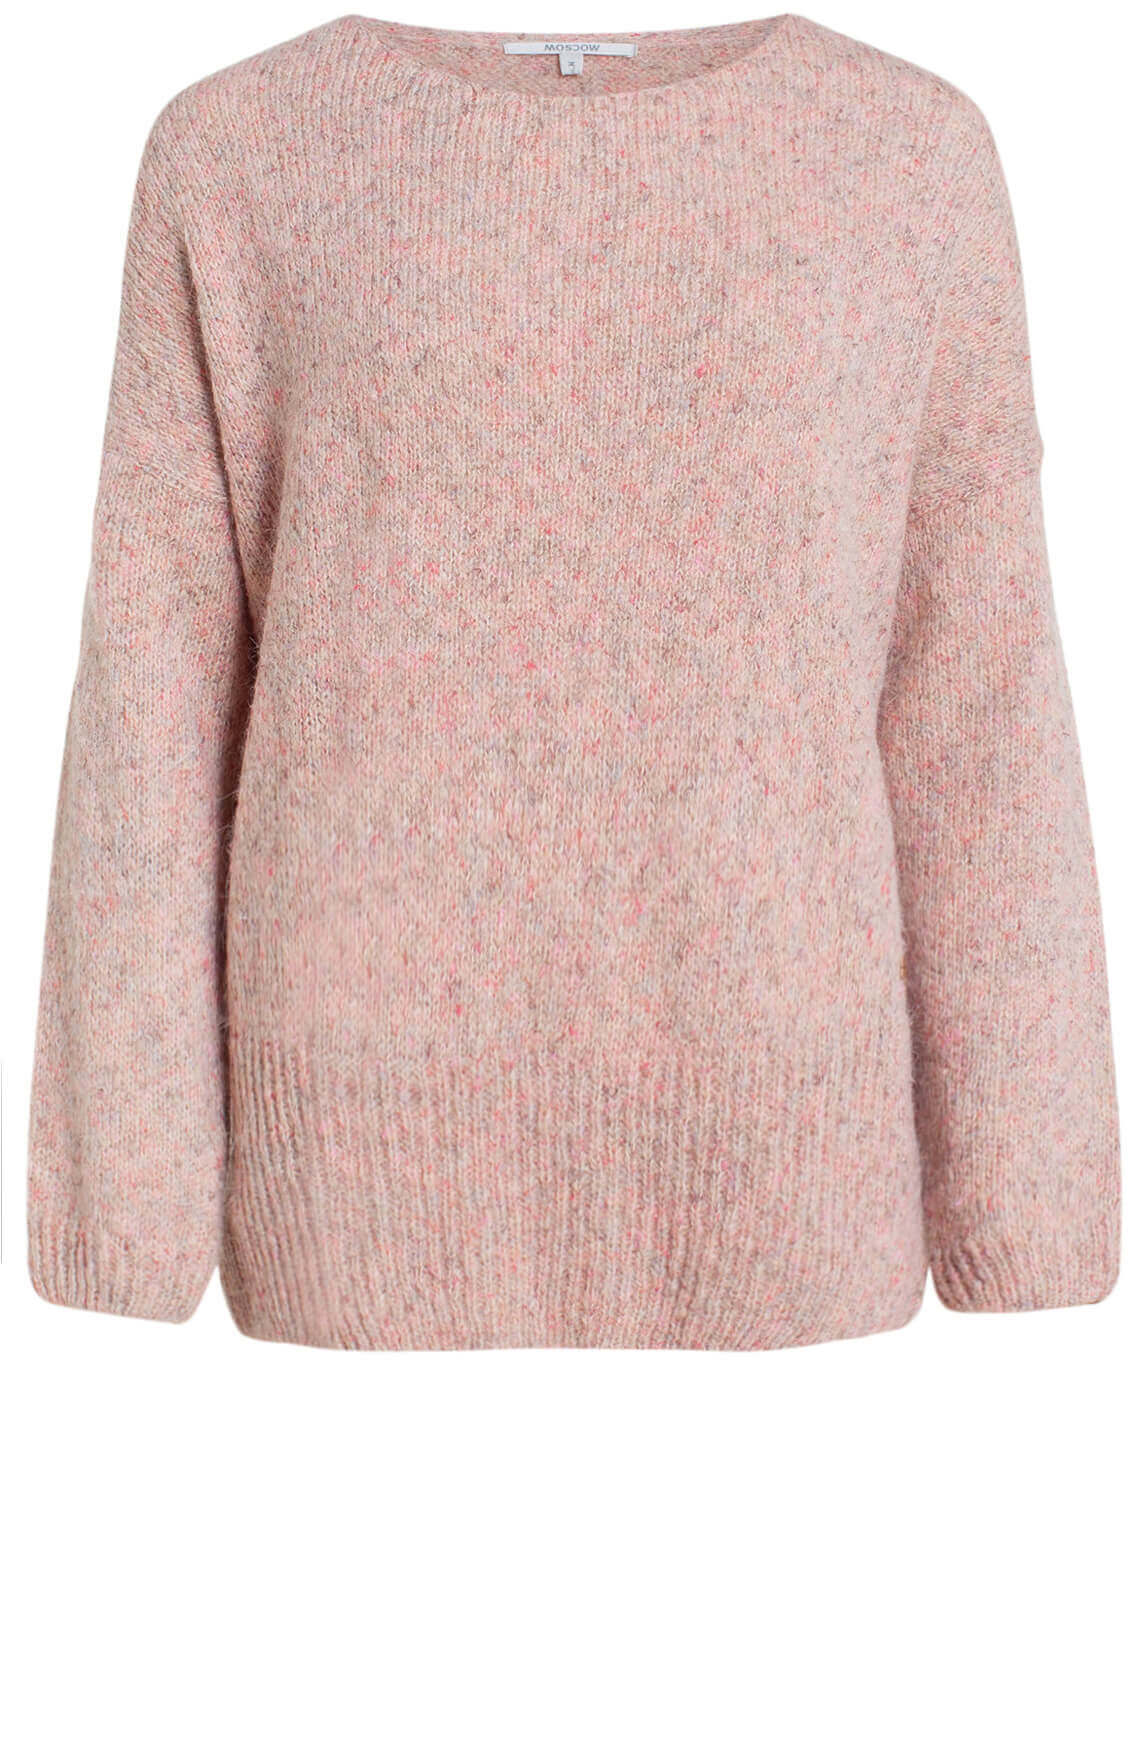 Moscow Dames Iva pullover roze